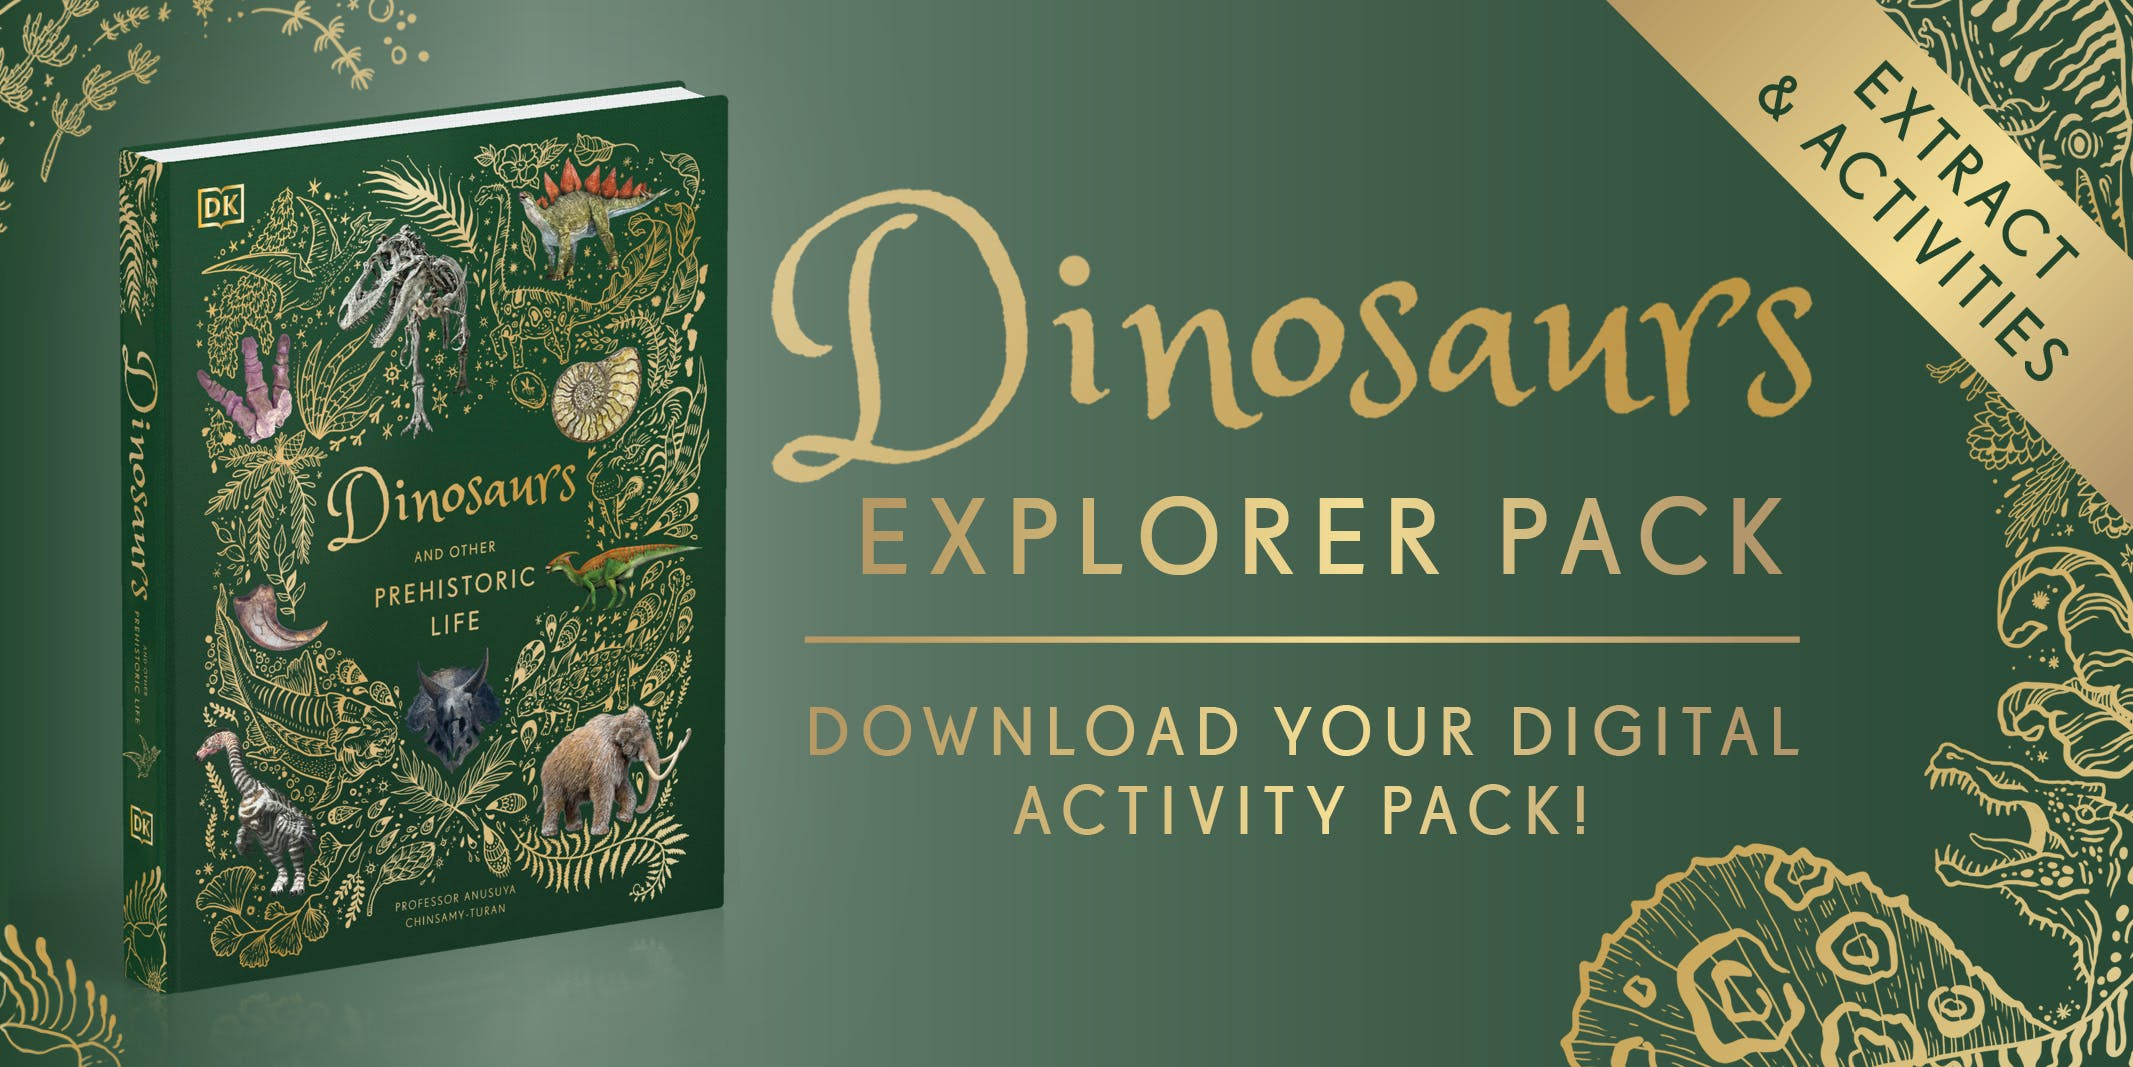 Dinosaurs and Other Prehistoric Life activity pack